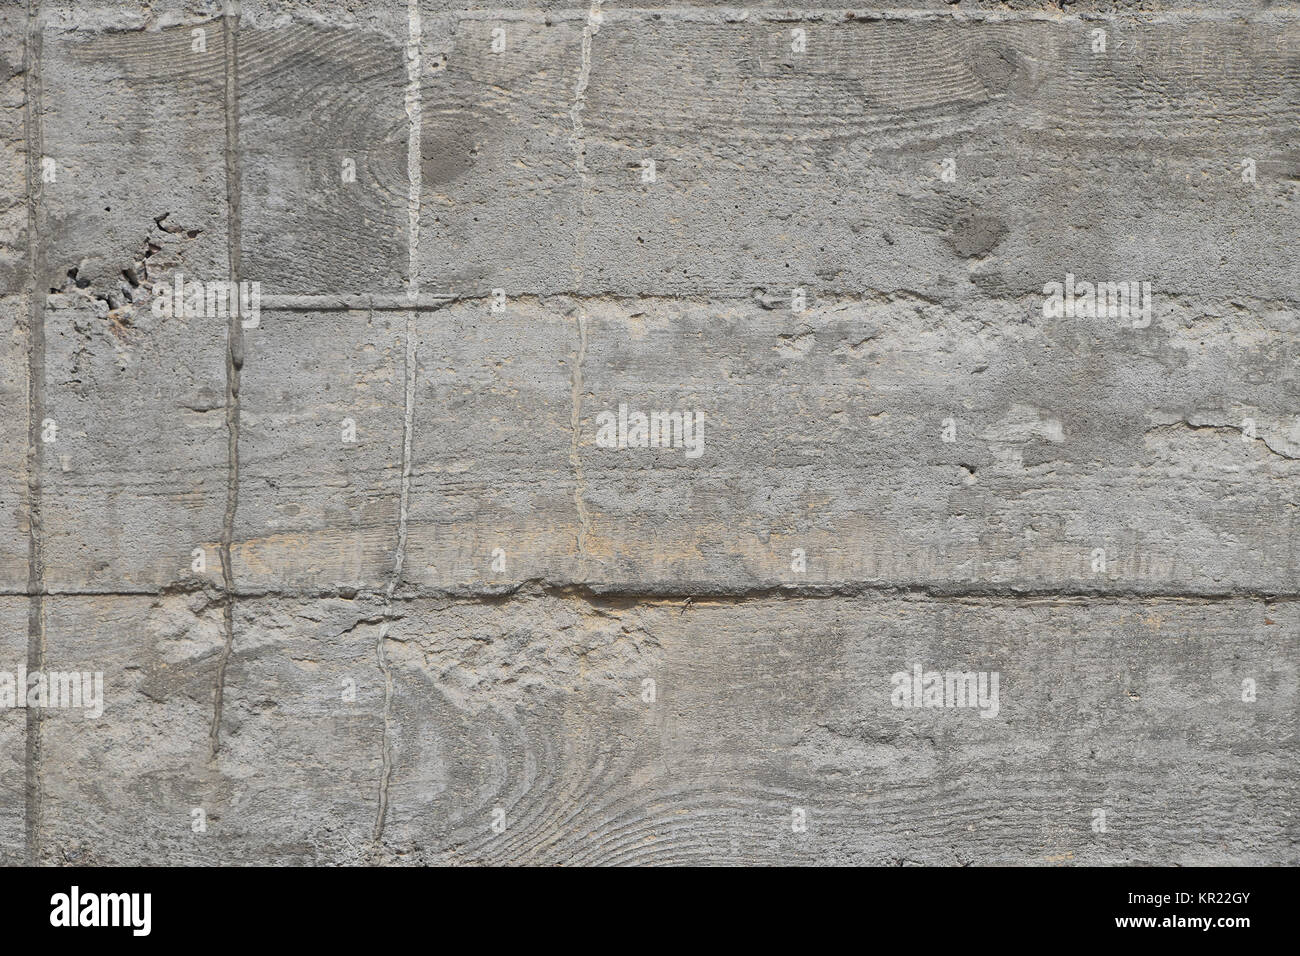 Concrete wall with cement sags close up - Stock Image